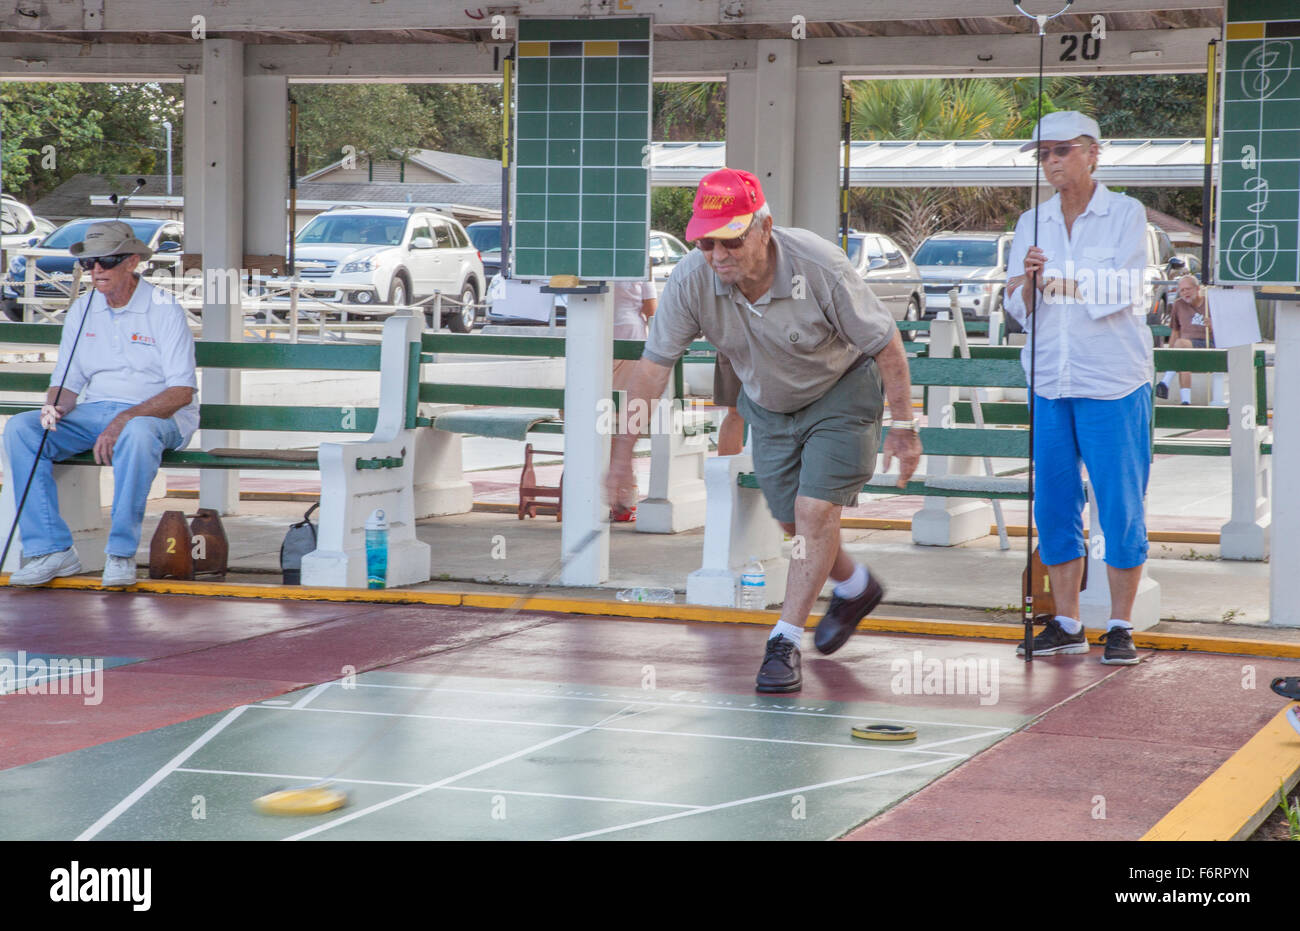 Senior citizens playing competitive shuffleboard game in Flager Ave in New Smyrna Beach Florida - Stock Image